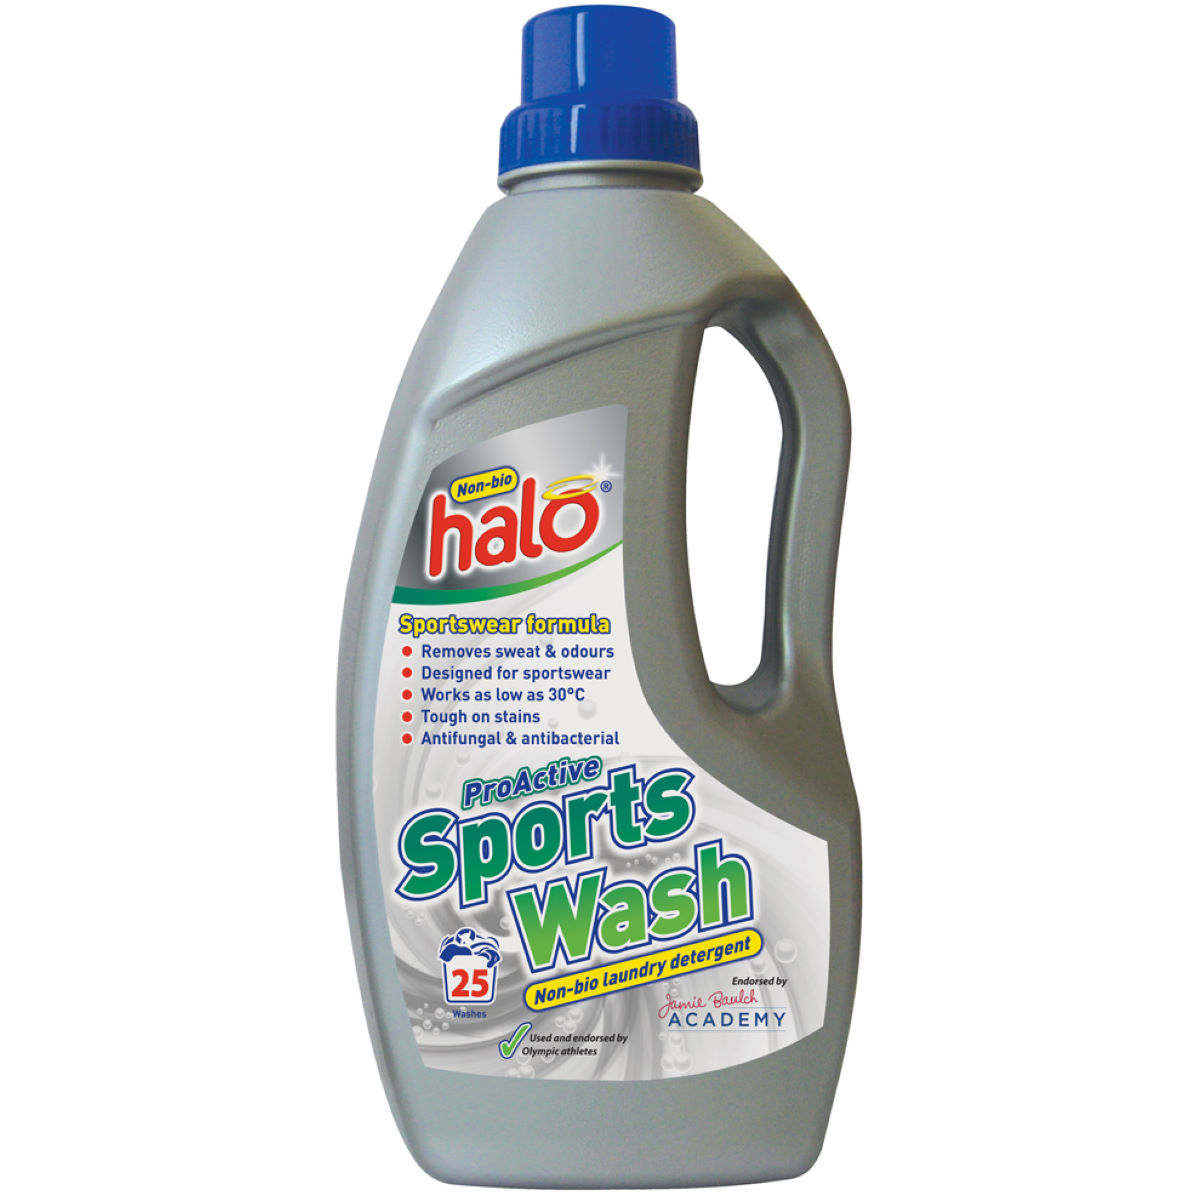 Image of Détergent Halo Proactive Sports Wash (1 litre) - 1 Litre